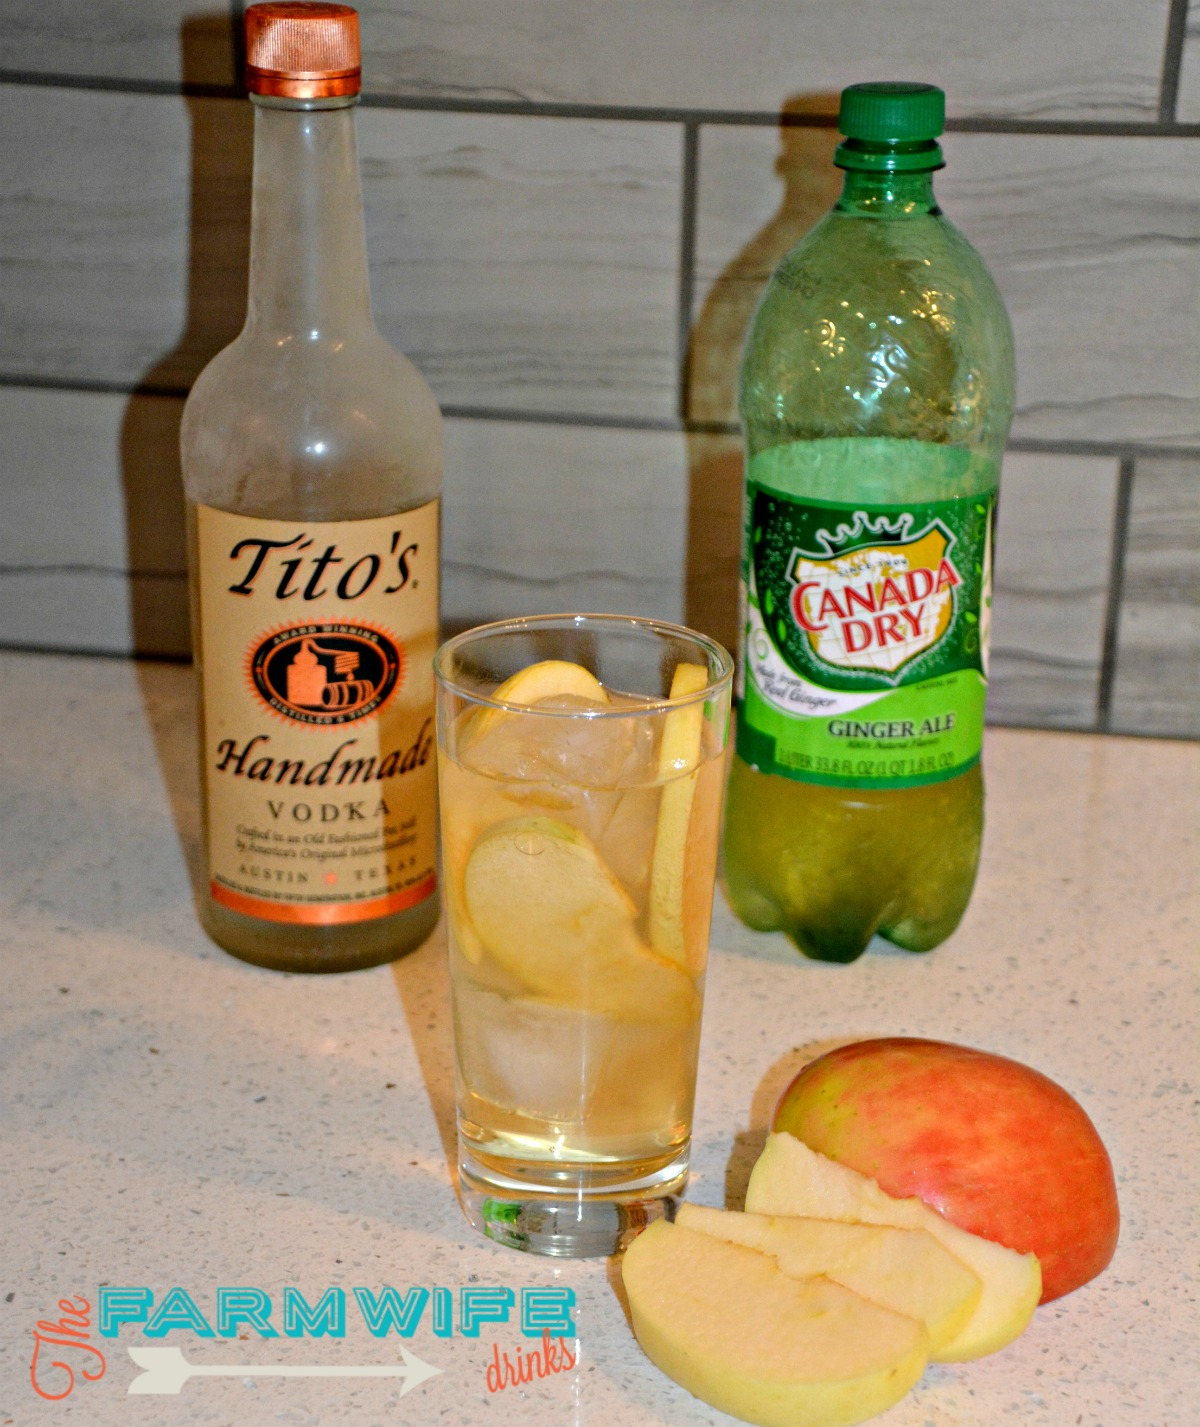 The subtle flavor of apple from the apple infused vodka make this ginger apple cocktail a crisp, refreshing fall cocktail